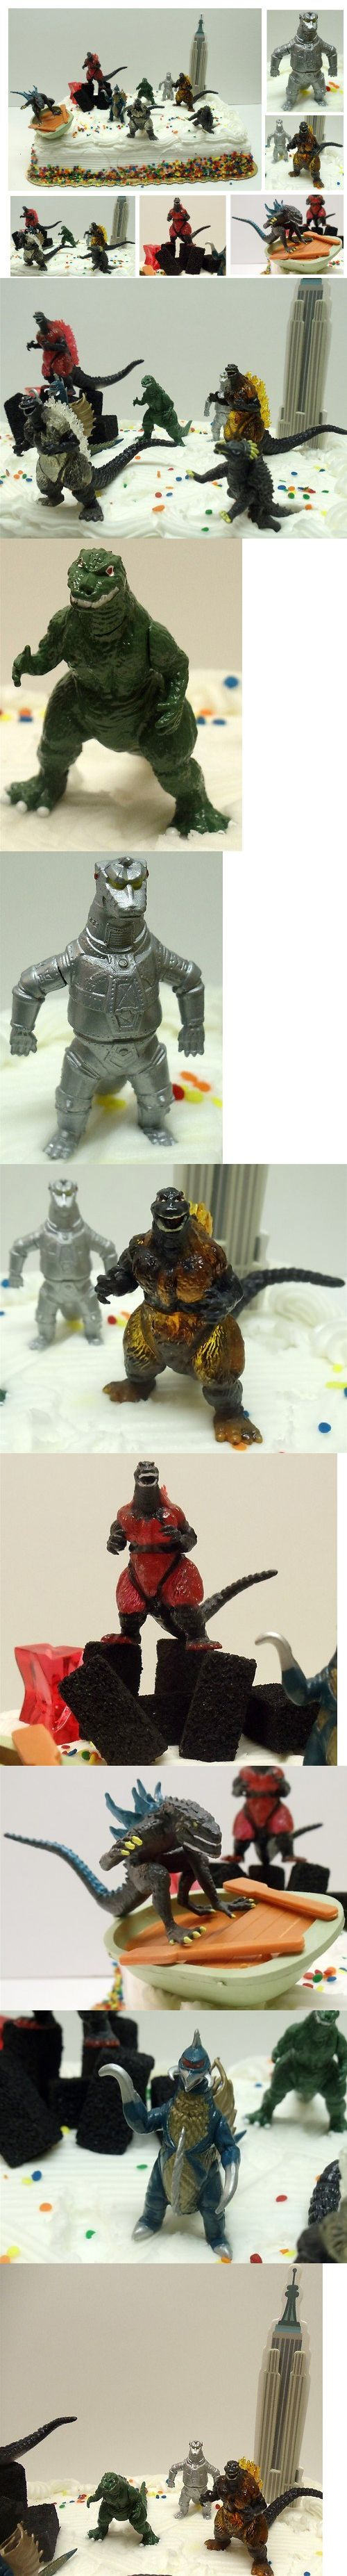 I'm pretty sure these are the Godzilla toys I've already bought!  17 Piece Godzilla Birthday Cake Topper Set Featuring Various Themed Godzilla Figures and Structures Including Anguirus, Fire Burning Godzilla Standing on Rubble Pile, Zilla New York Godzilla on Boat, Clear Fire Burning Godzilla, Mechagodzilla, Gashapon Godzilla, Gigan Godzilla, and Decorative Skyscraper - Cake Supplies - Toys - $29.99